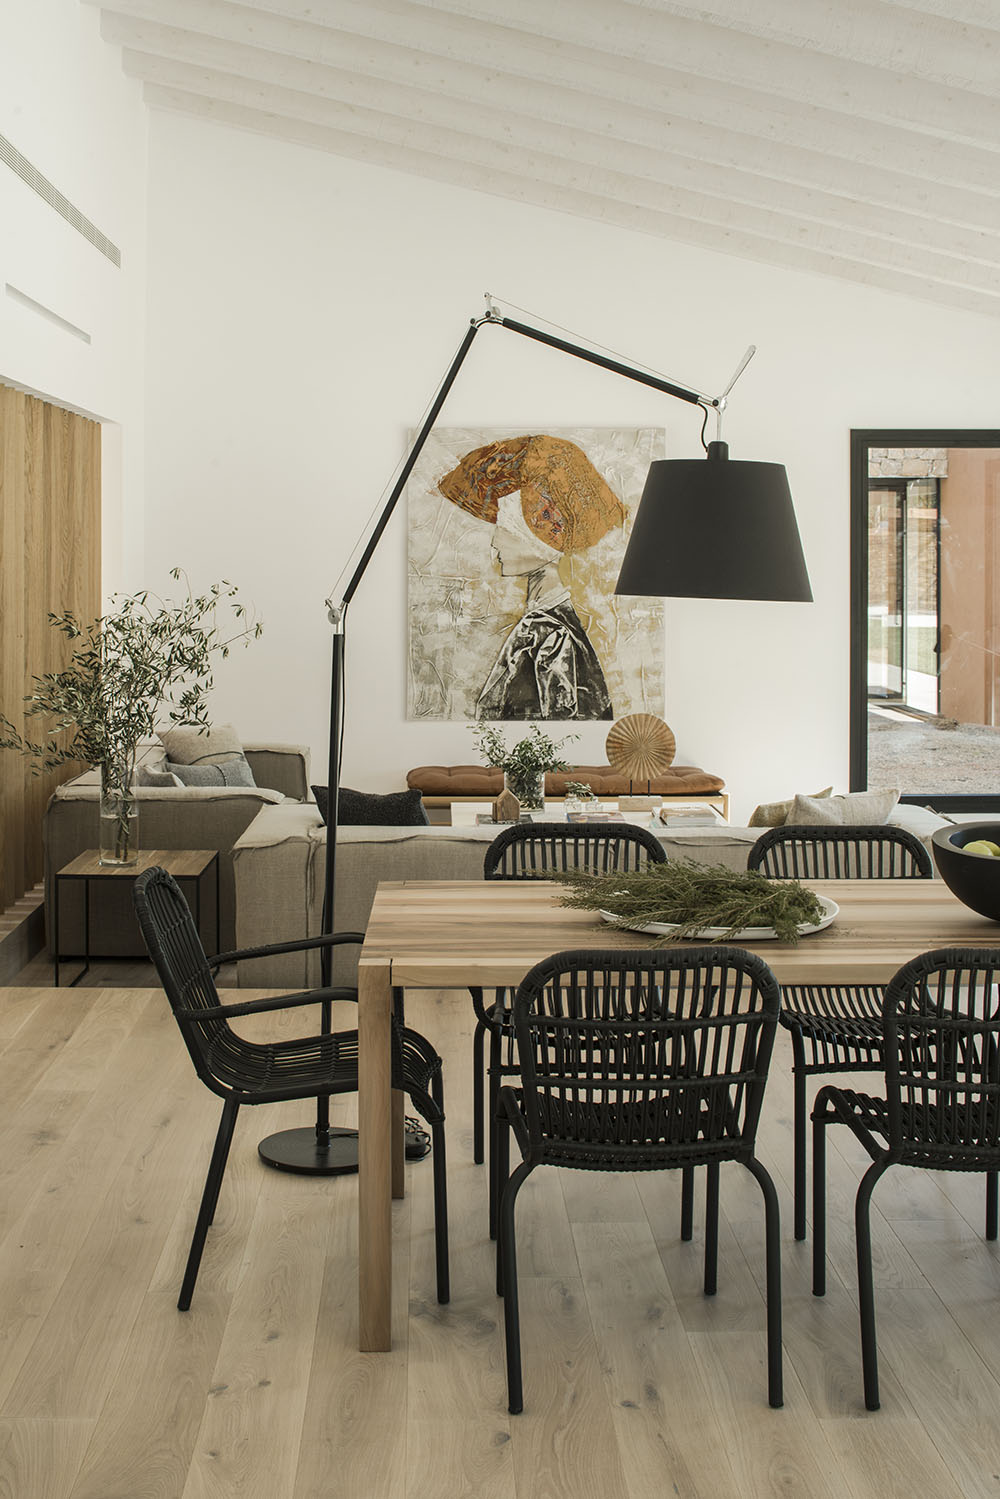 Using a floor lamp instead of pendants or a chandelier is a modern choice.